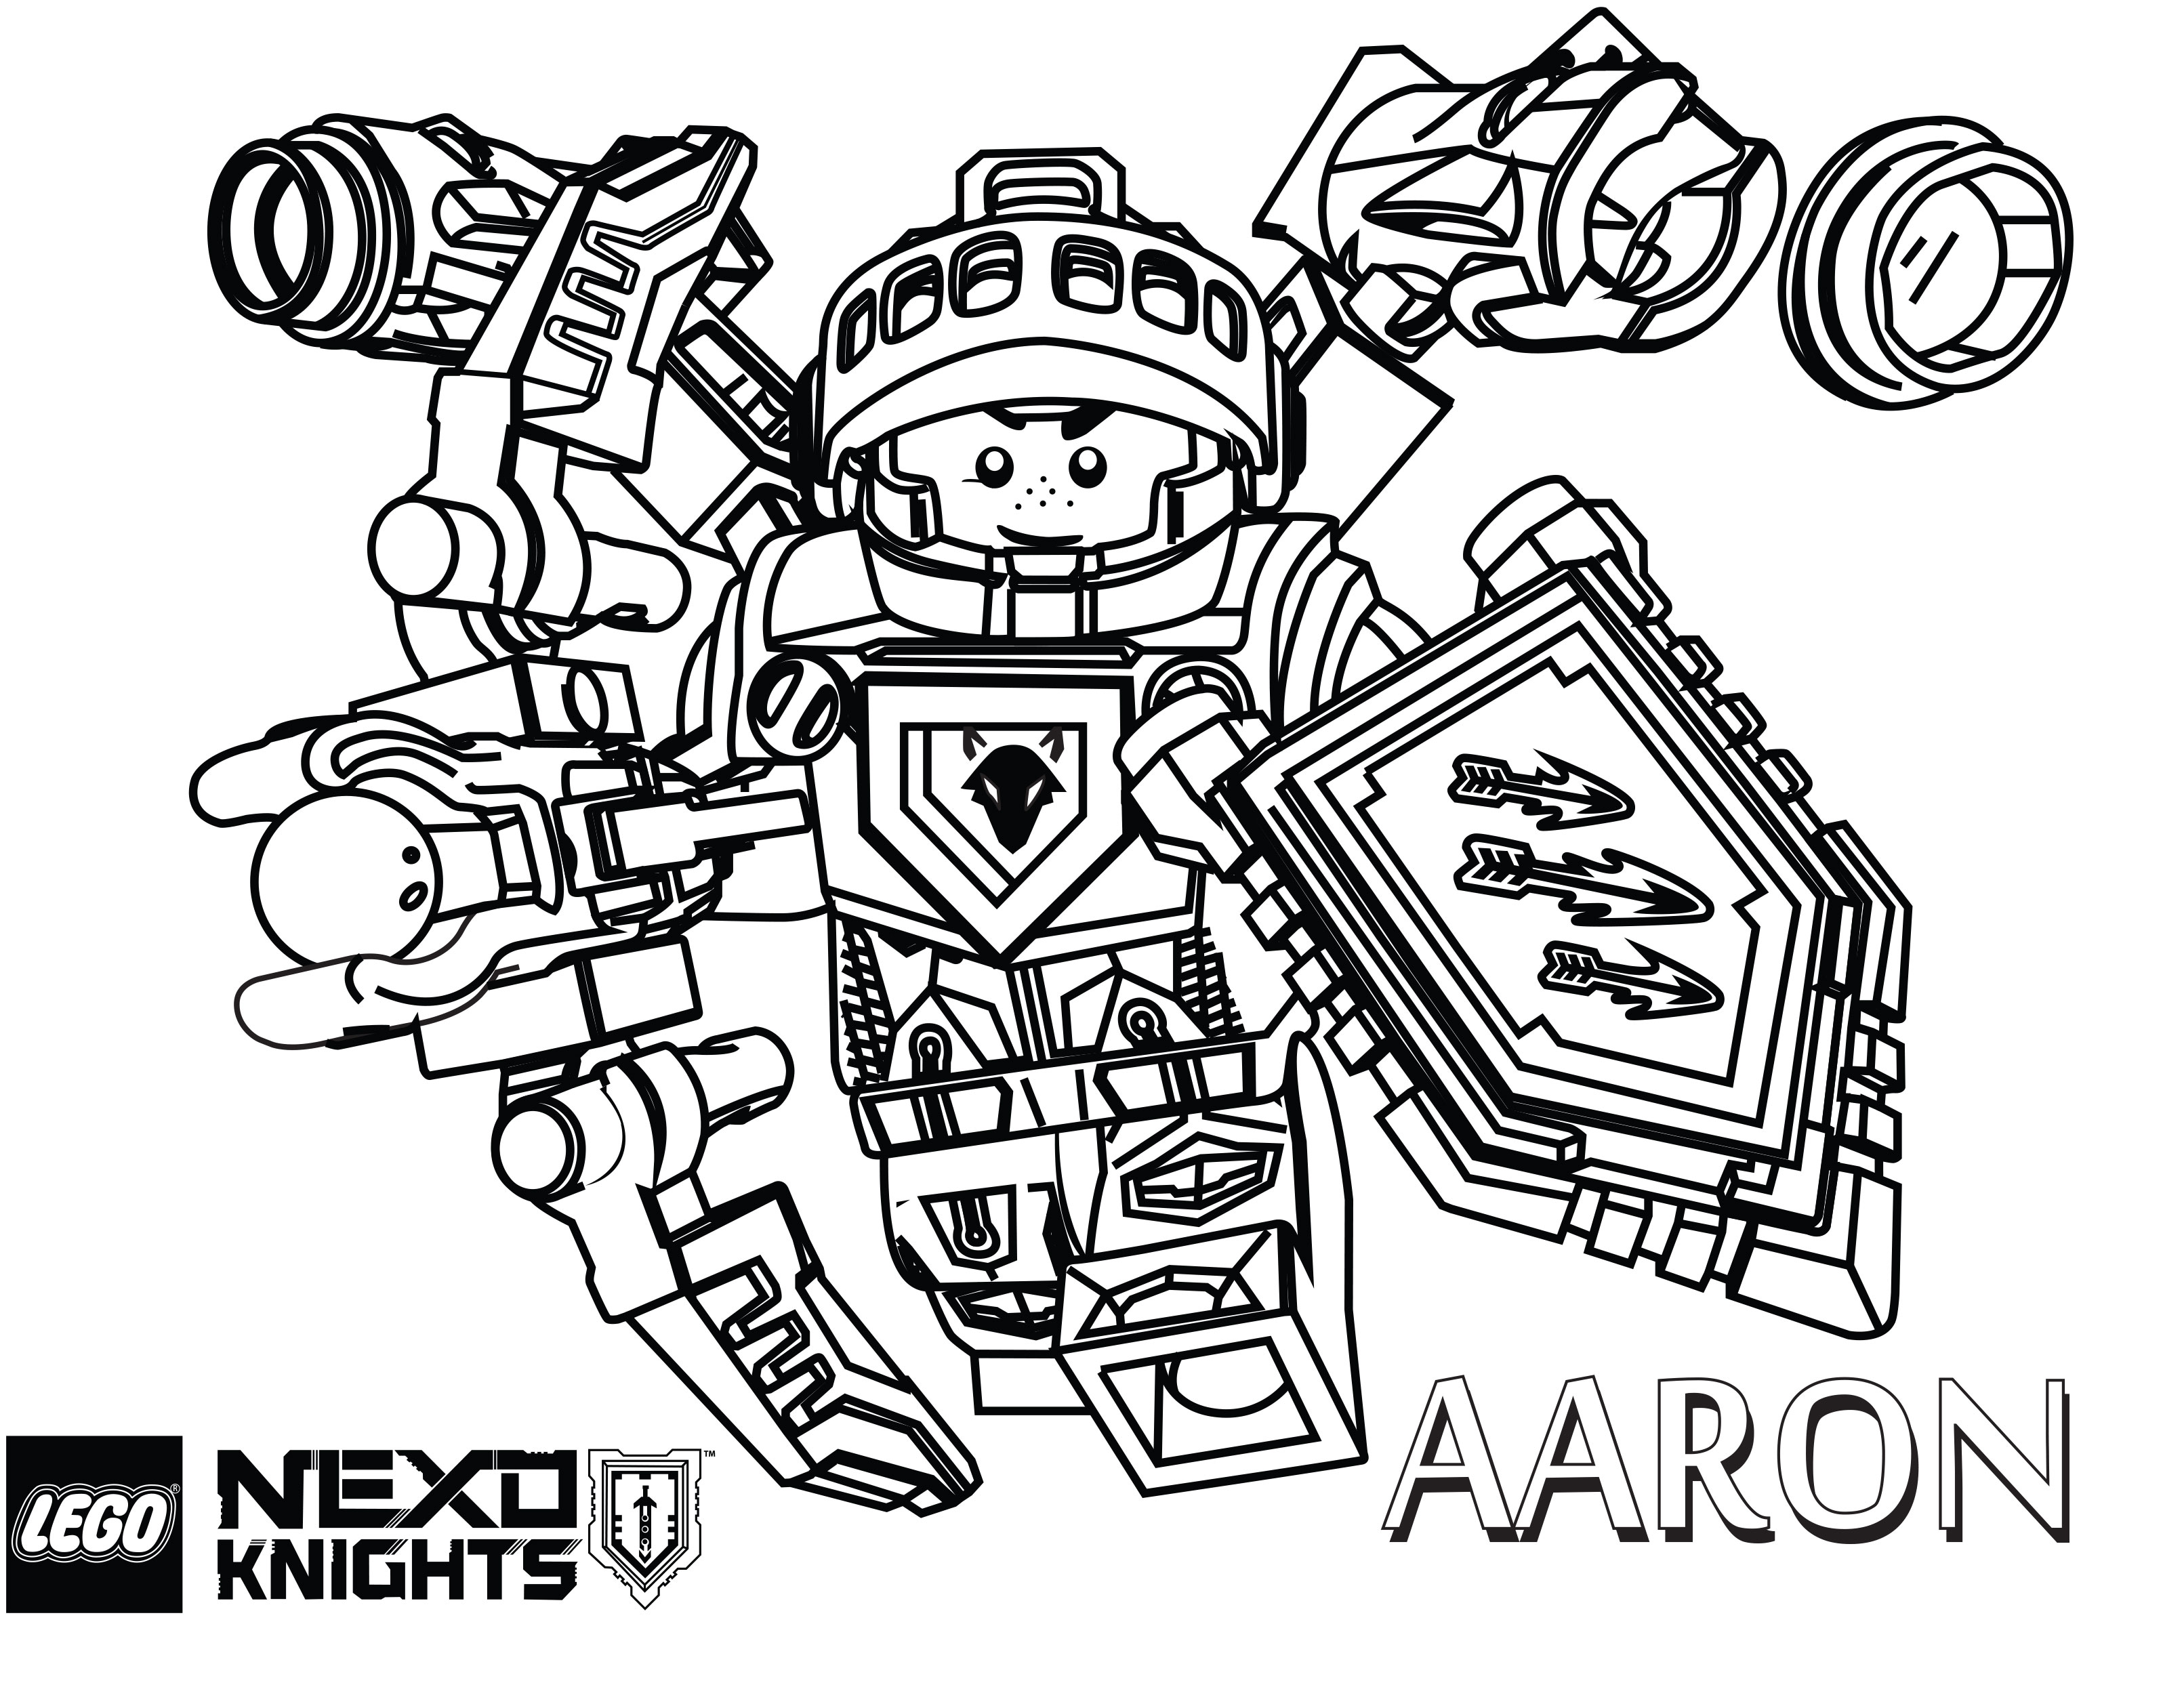 Lego Nexo Knights Coloring Pages The Brick Fan The Brick Fan